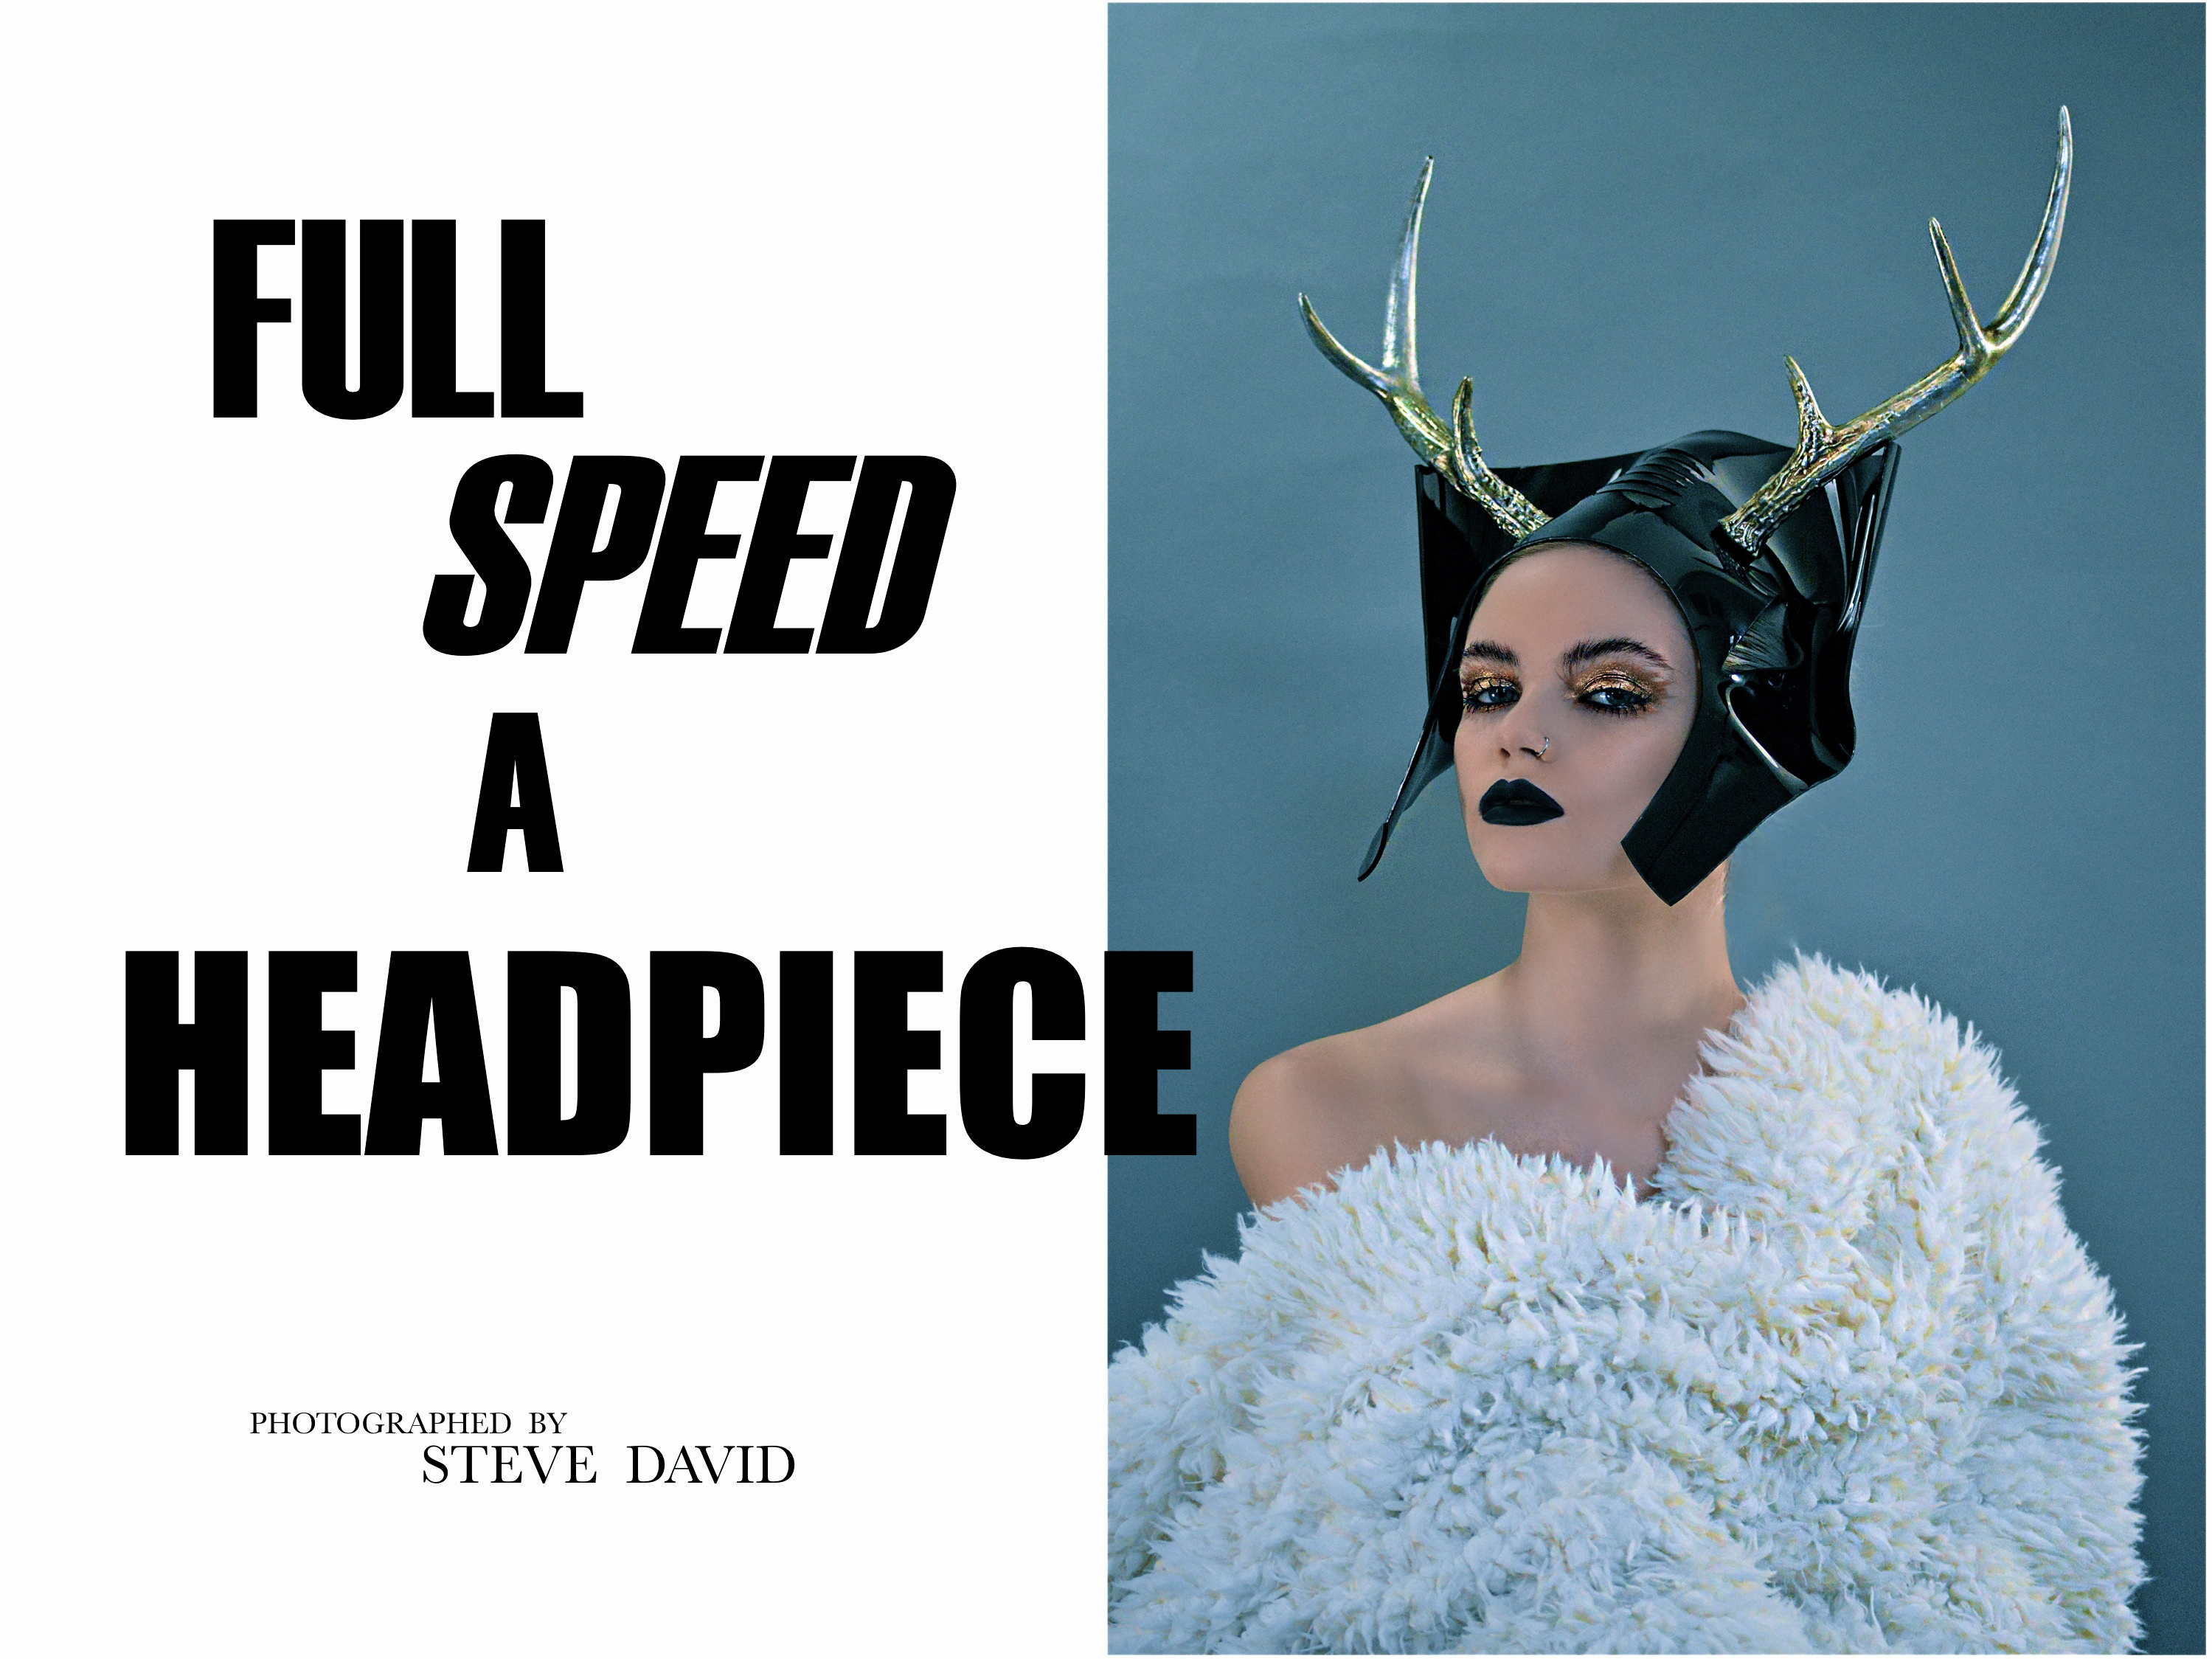 Full Speed a Headpiece